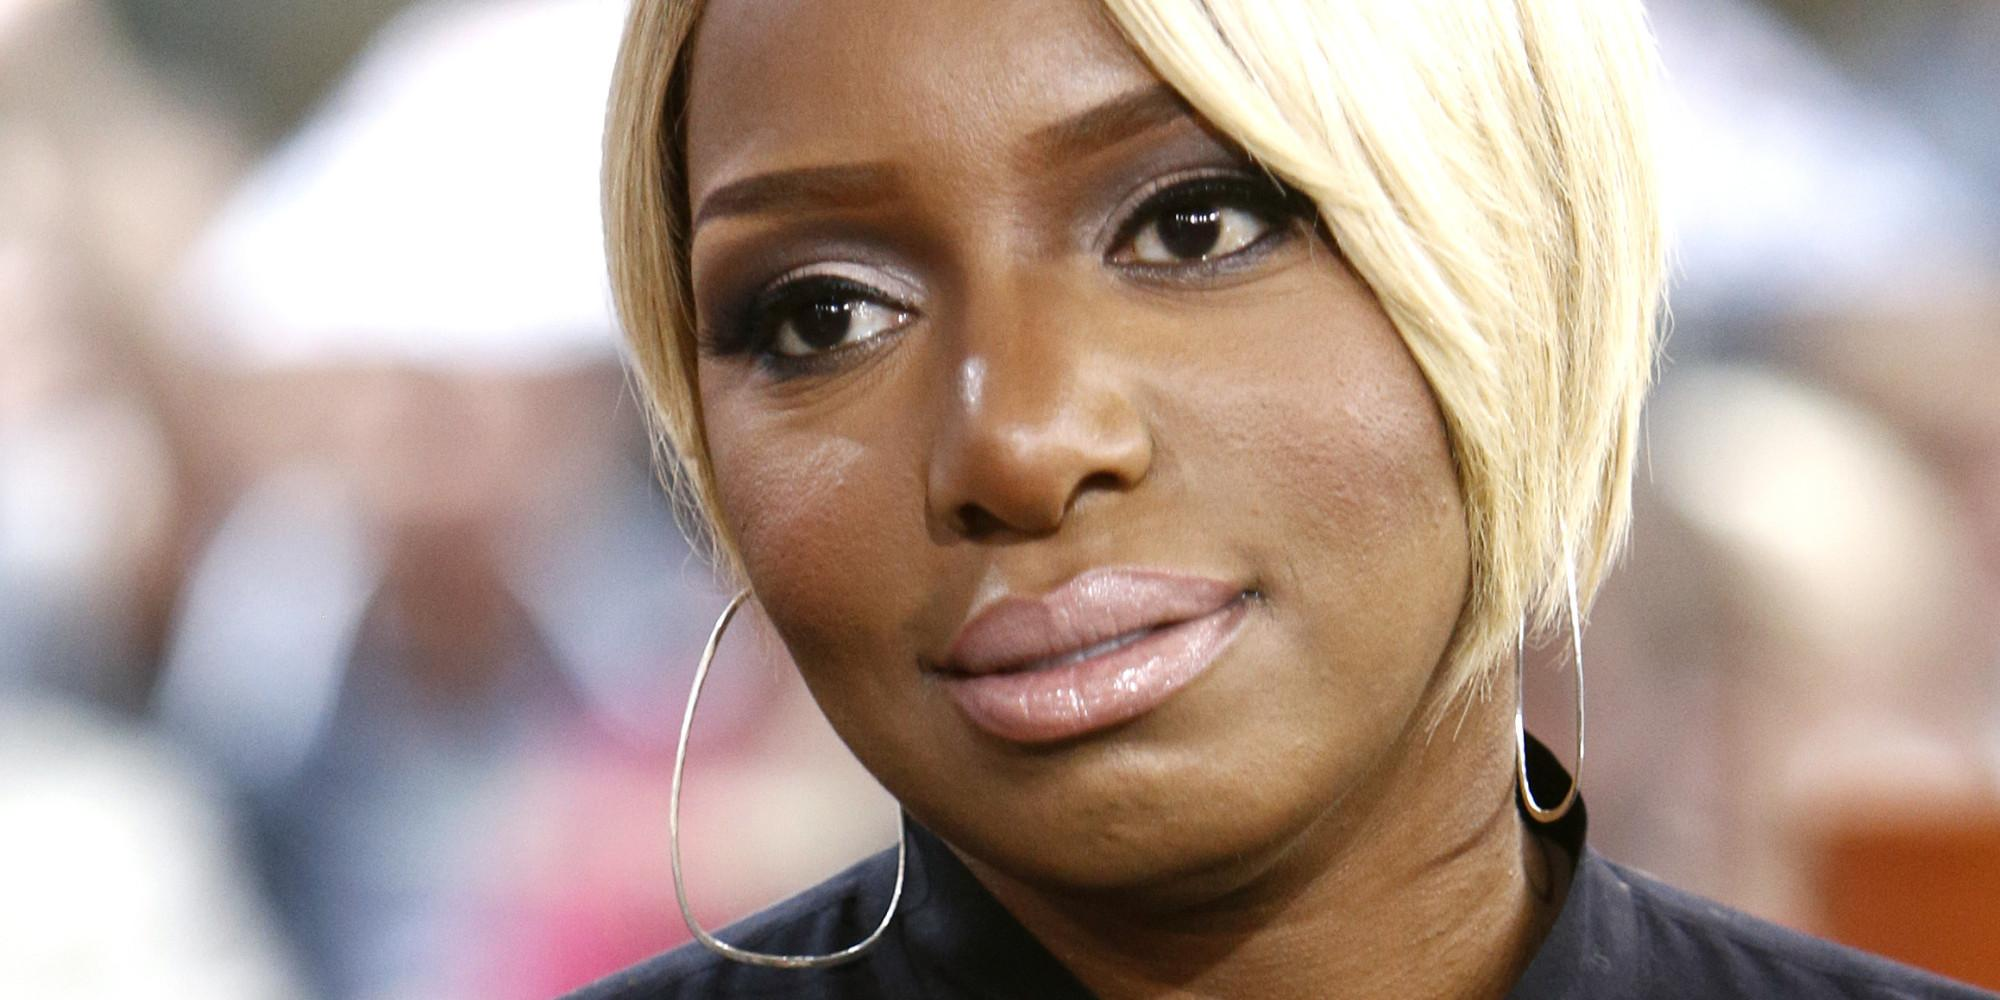 Nene Leakes Respnds To Kenya Moore Saying She's 'Dead To Her' In Interview: 'She's Never Been Alive To Me'